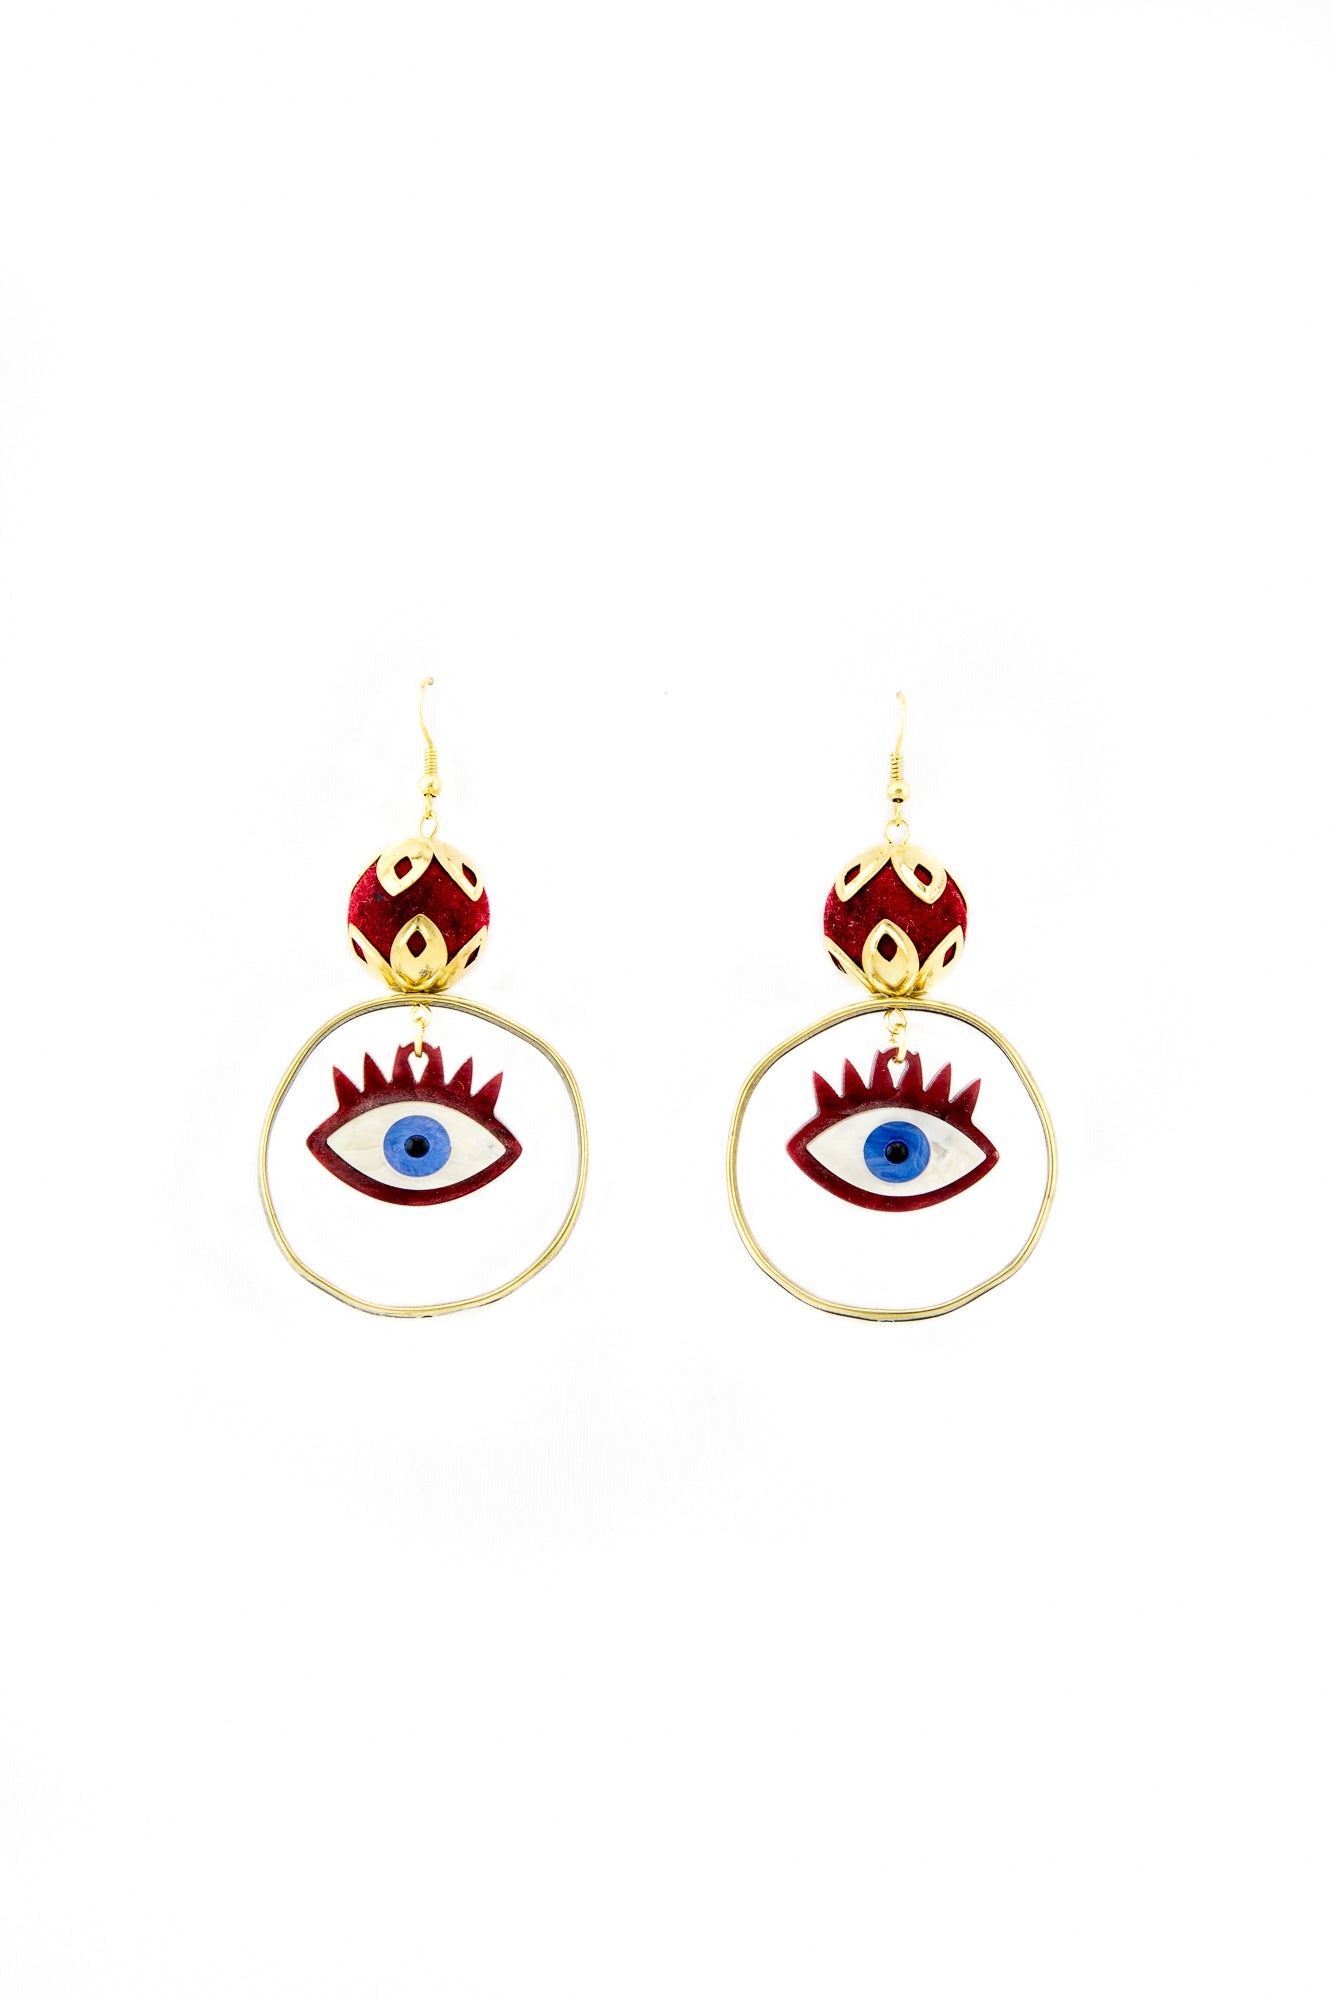 Burgundy evil eye earrings - Sofi Moukidou